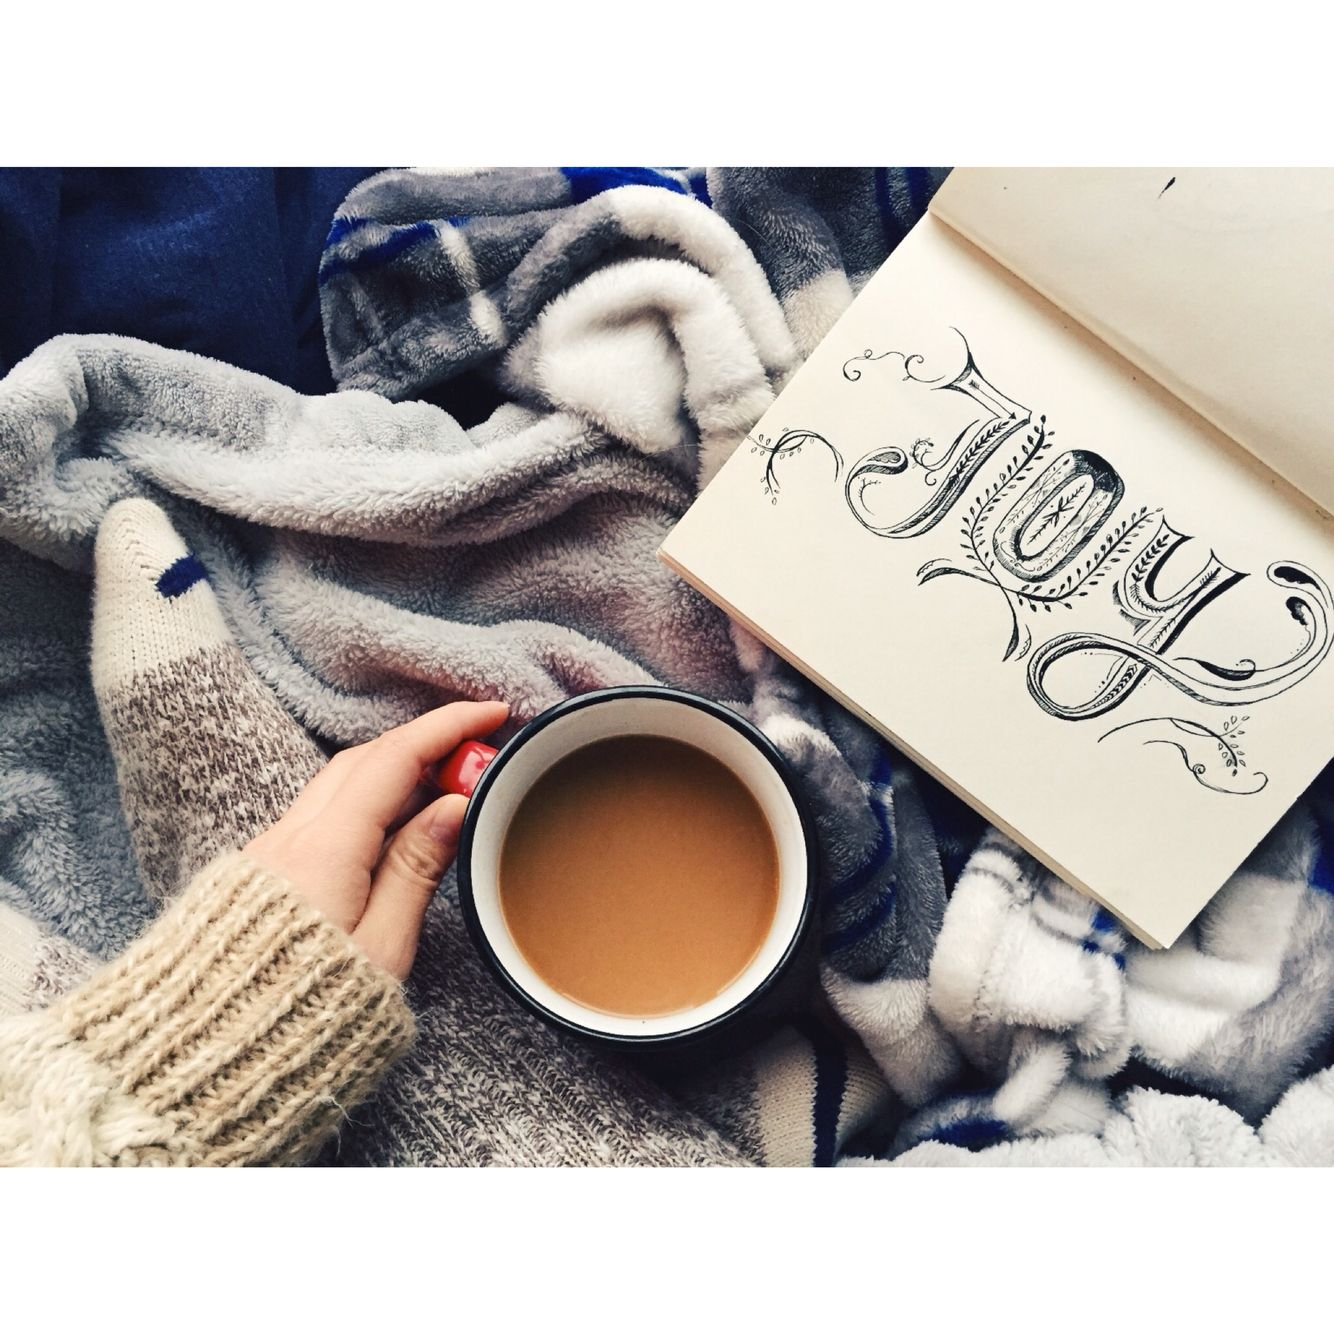 Warm And Cozy Coffee Time Instagram Erqing Warm And Cozy Coffee Time Instagram